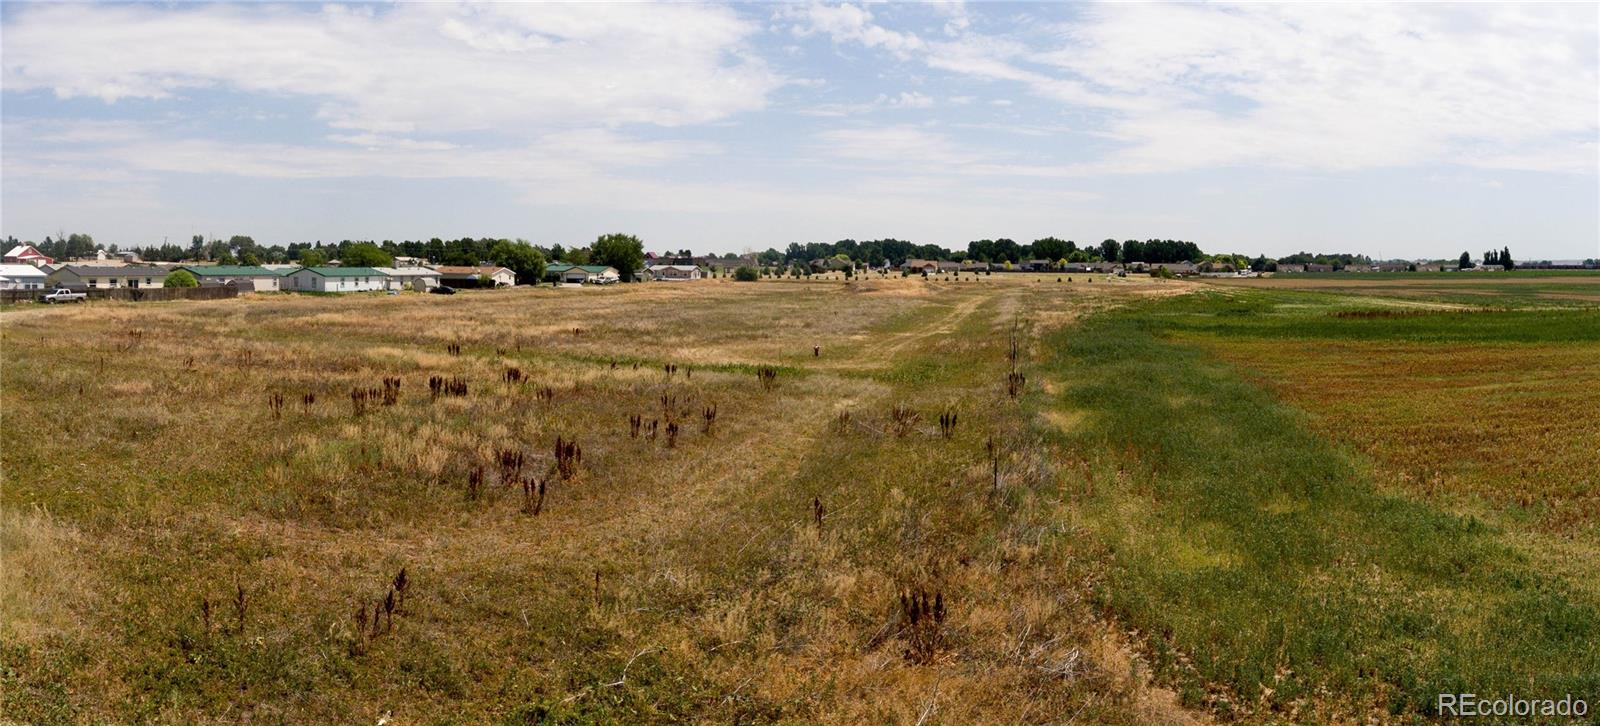 0 To Be Decided, Fort Morgan, CO 80701 - Fort Morgan, CO real estate listing